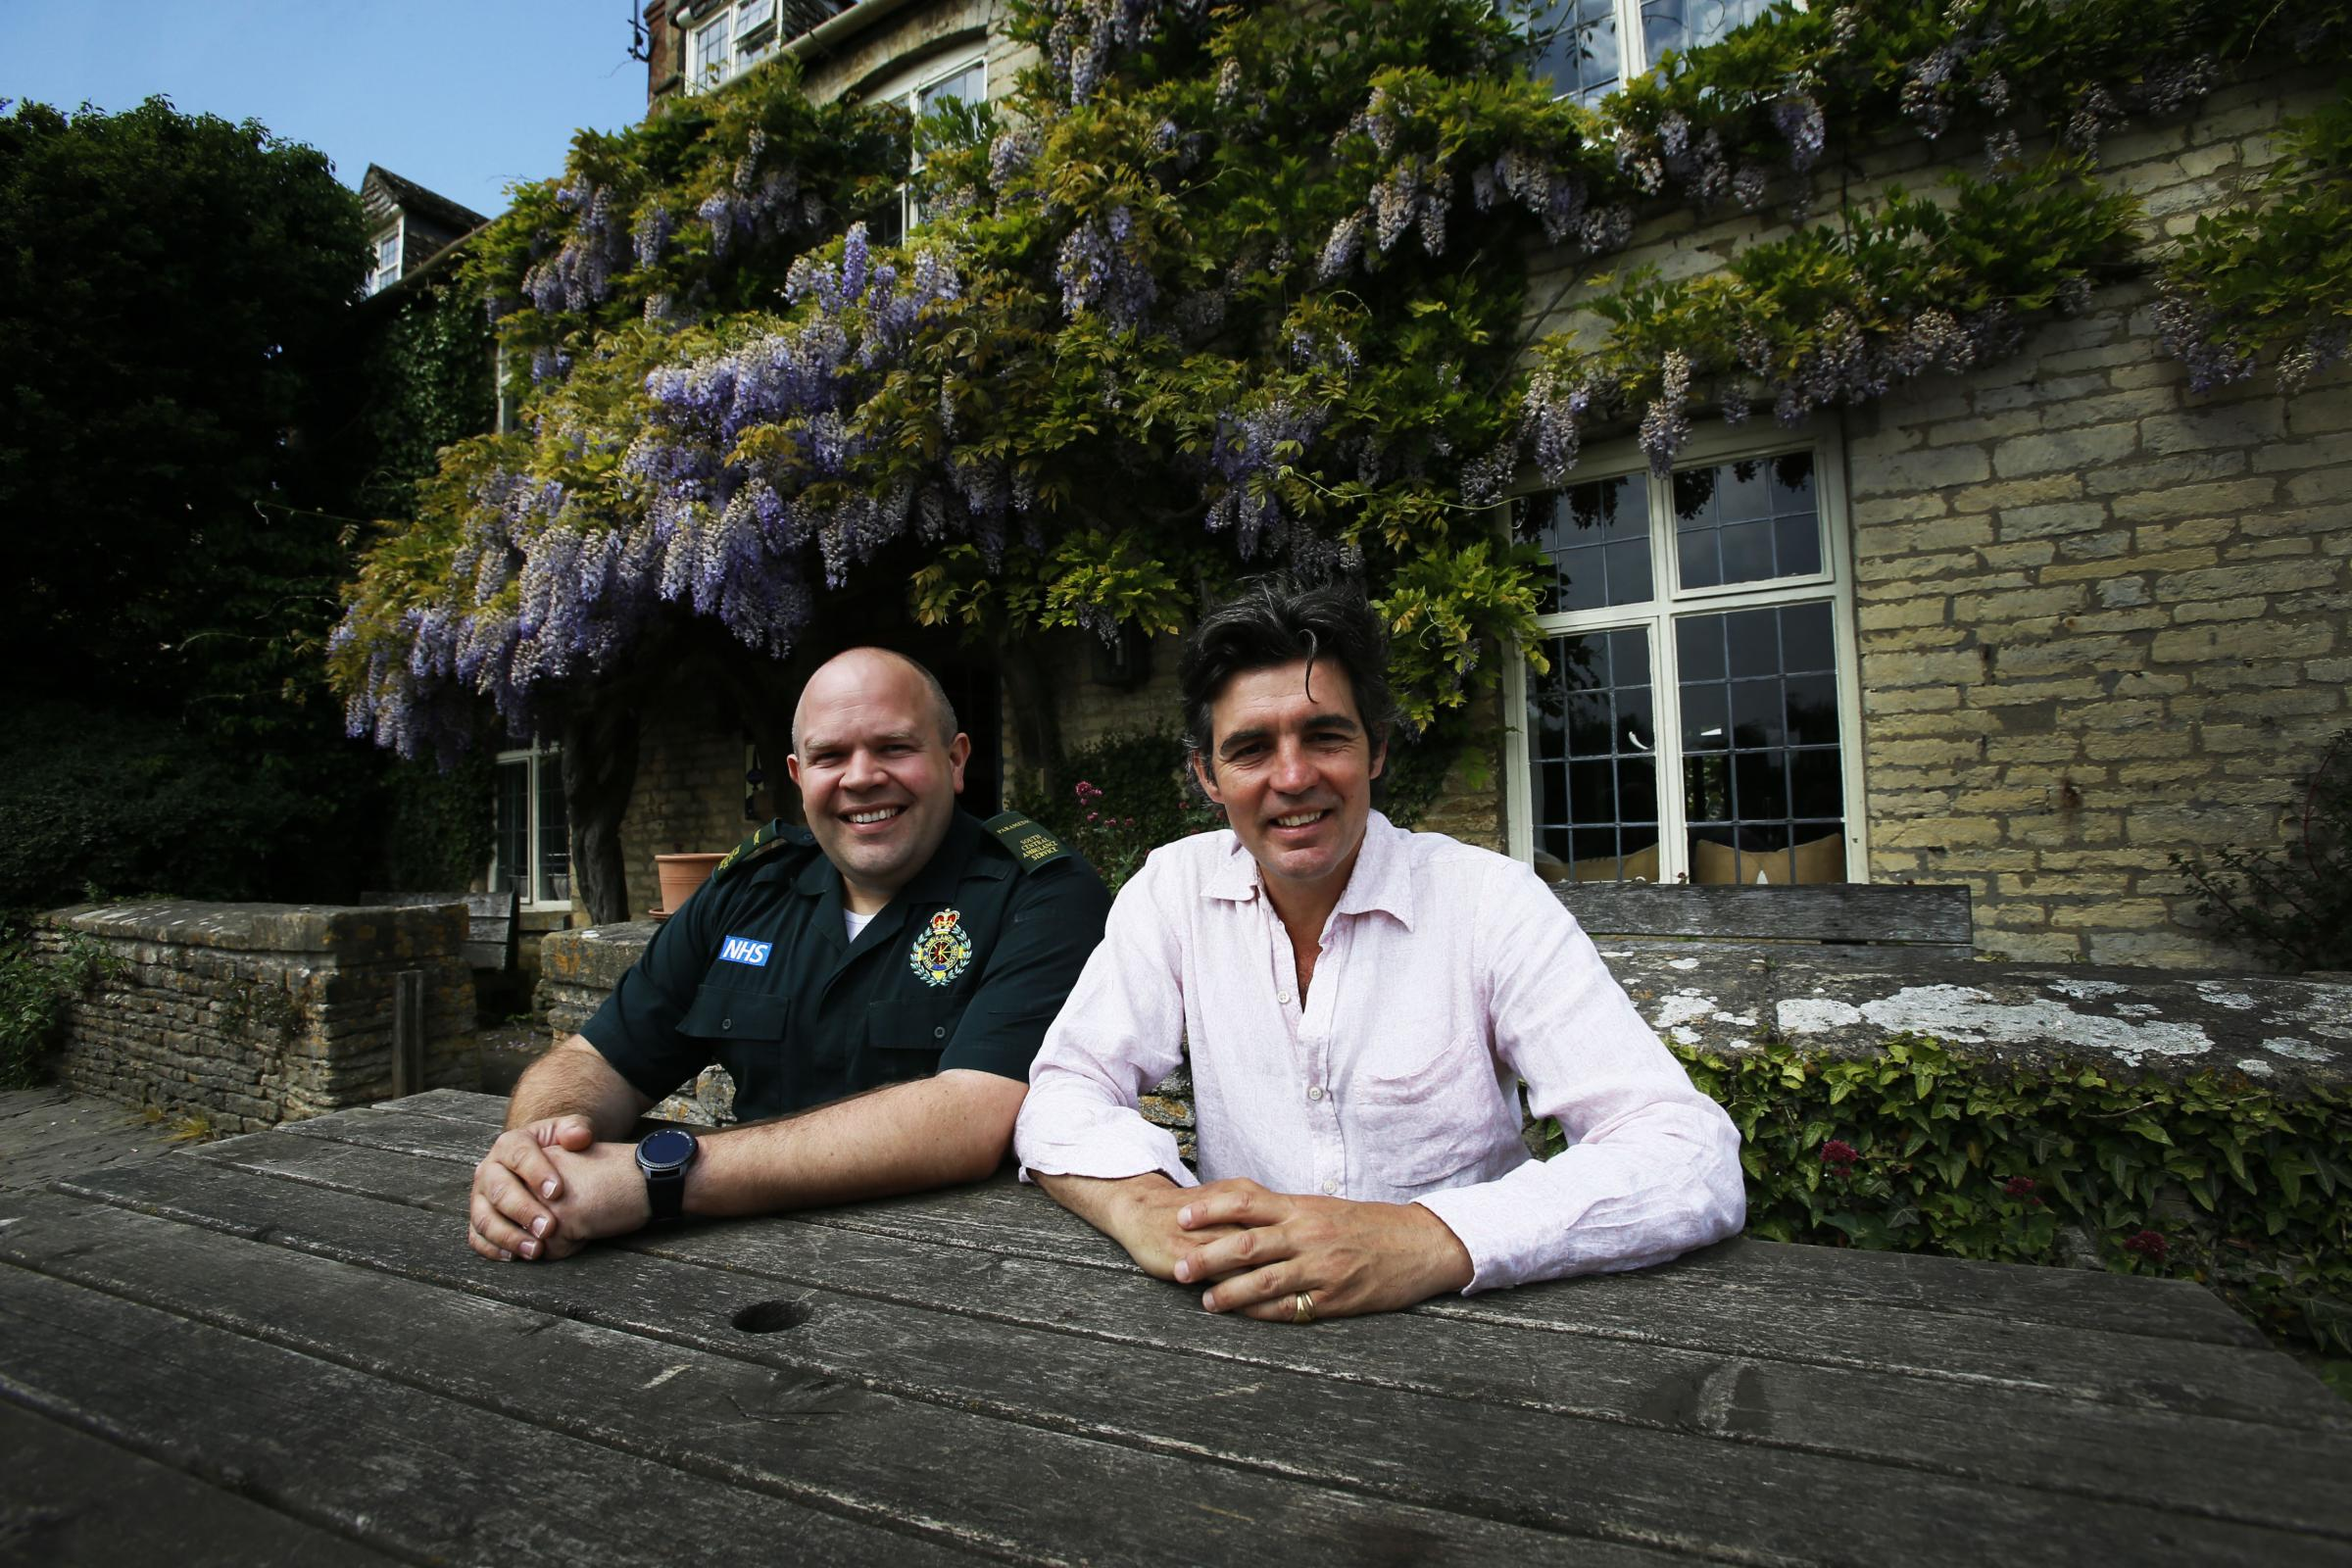 Lifesaving landlord Archie Orr-Ewing (right) saved a womanÕs life earlier this month when he stopped her from choking and performed first aid on her after she went into cardiac arrest in his pub. 